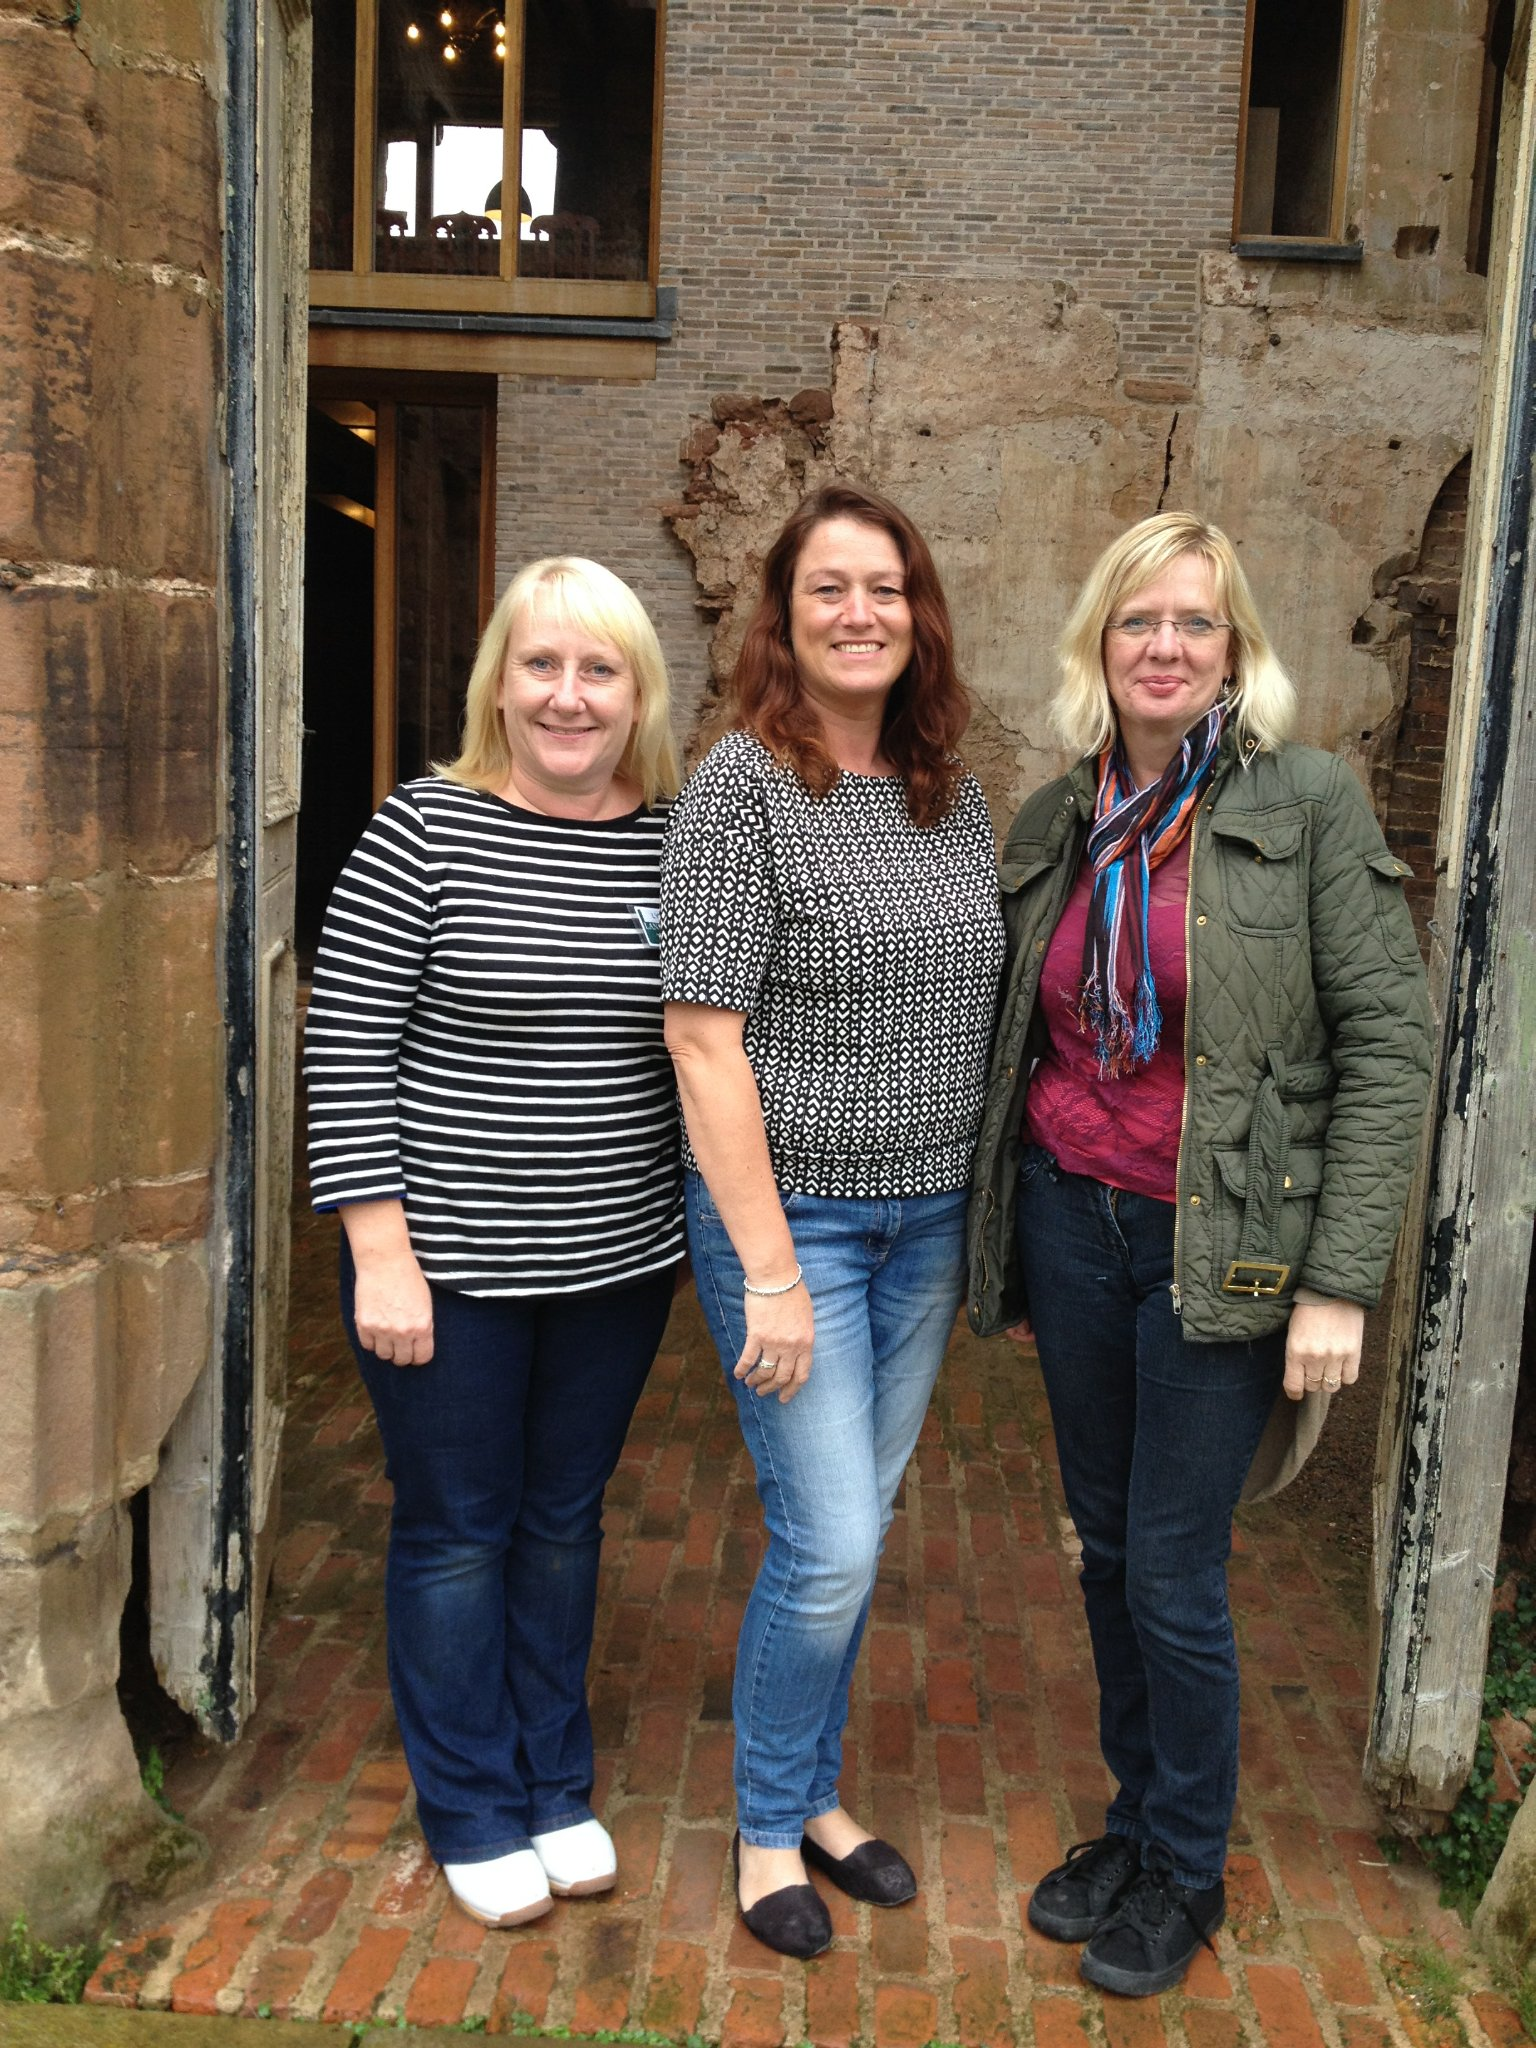 Housekeepers Lynee, Marie and Carolyn at Astley Castle